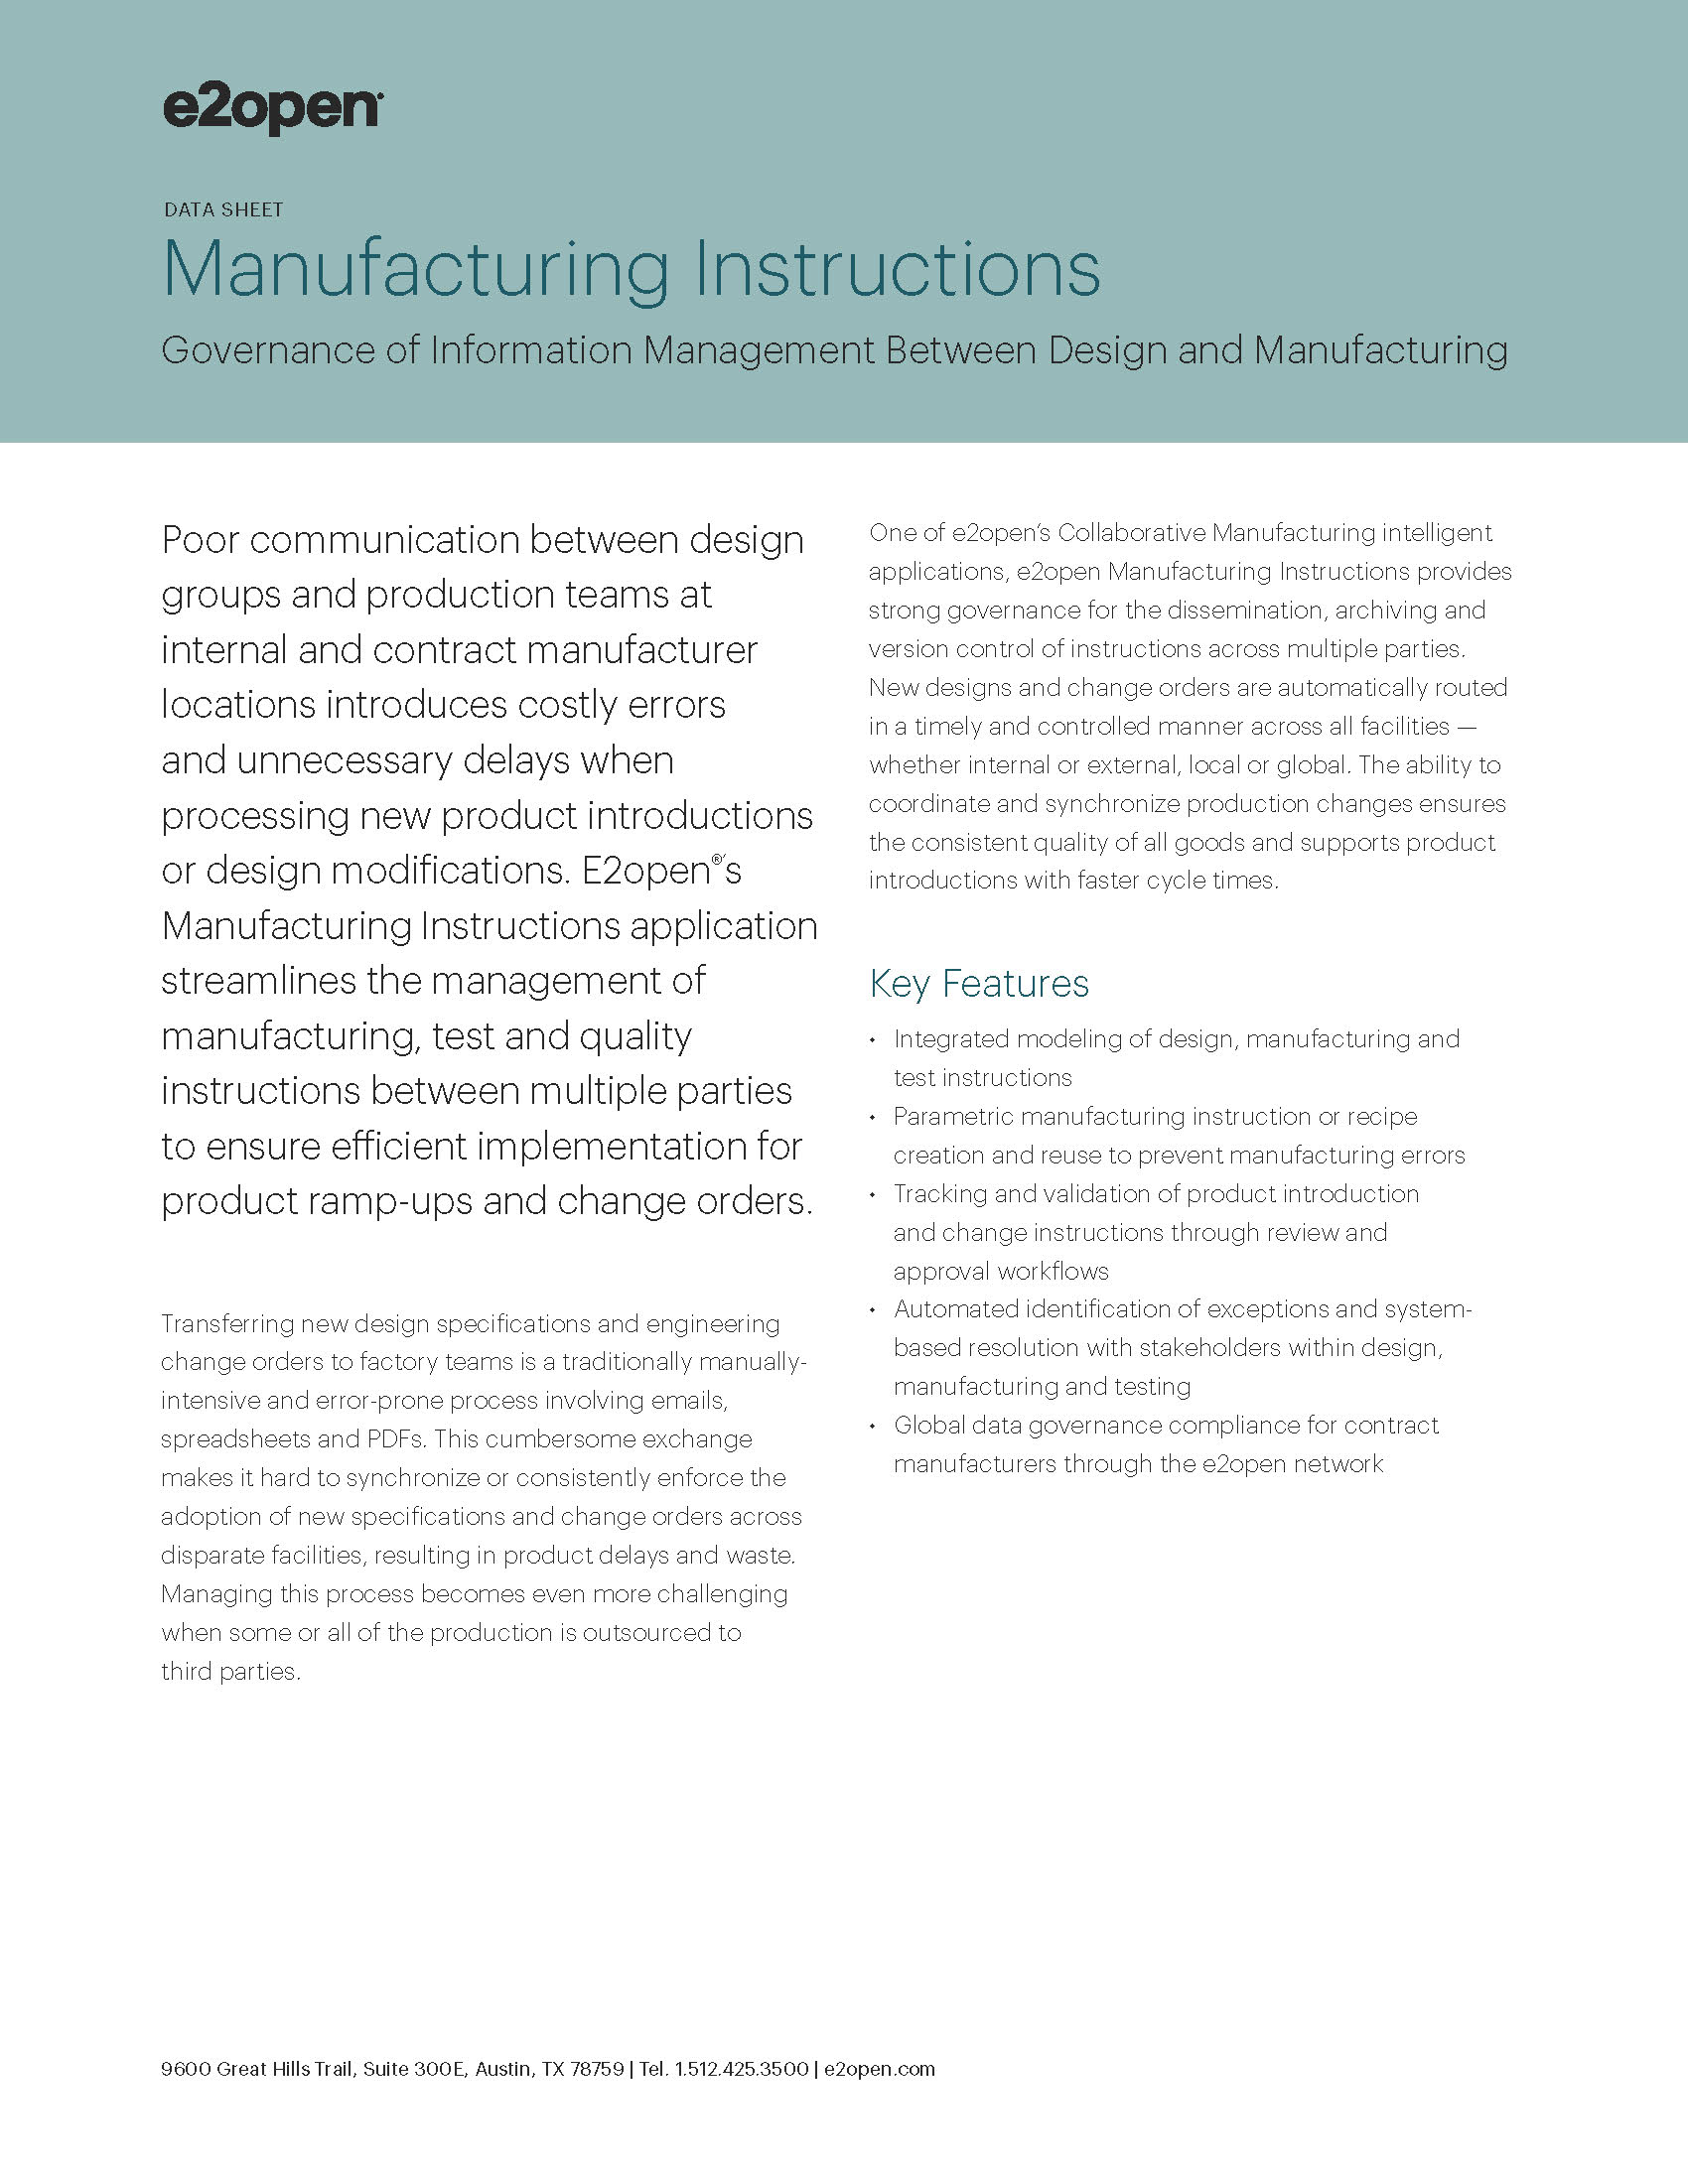 E2open Manufacturing Instructions